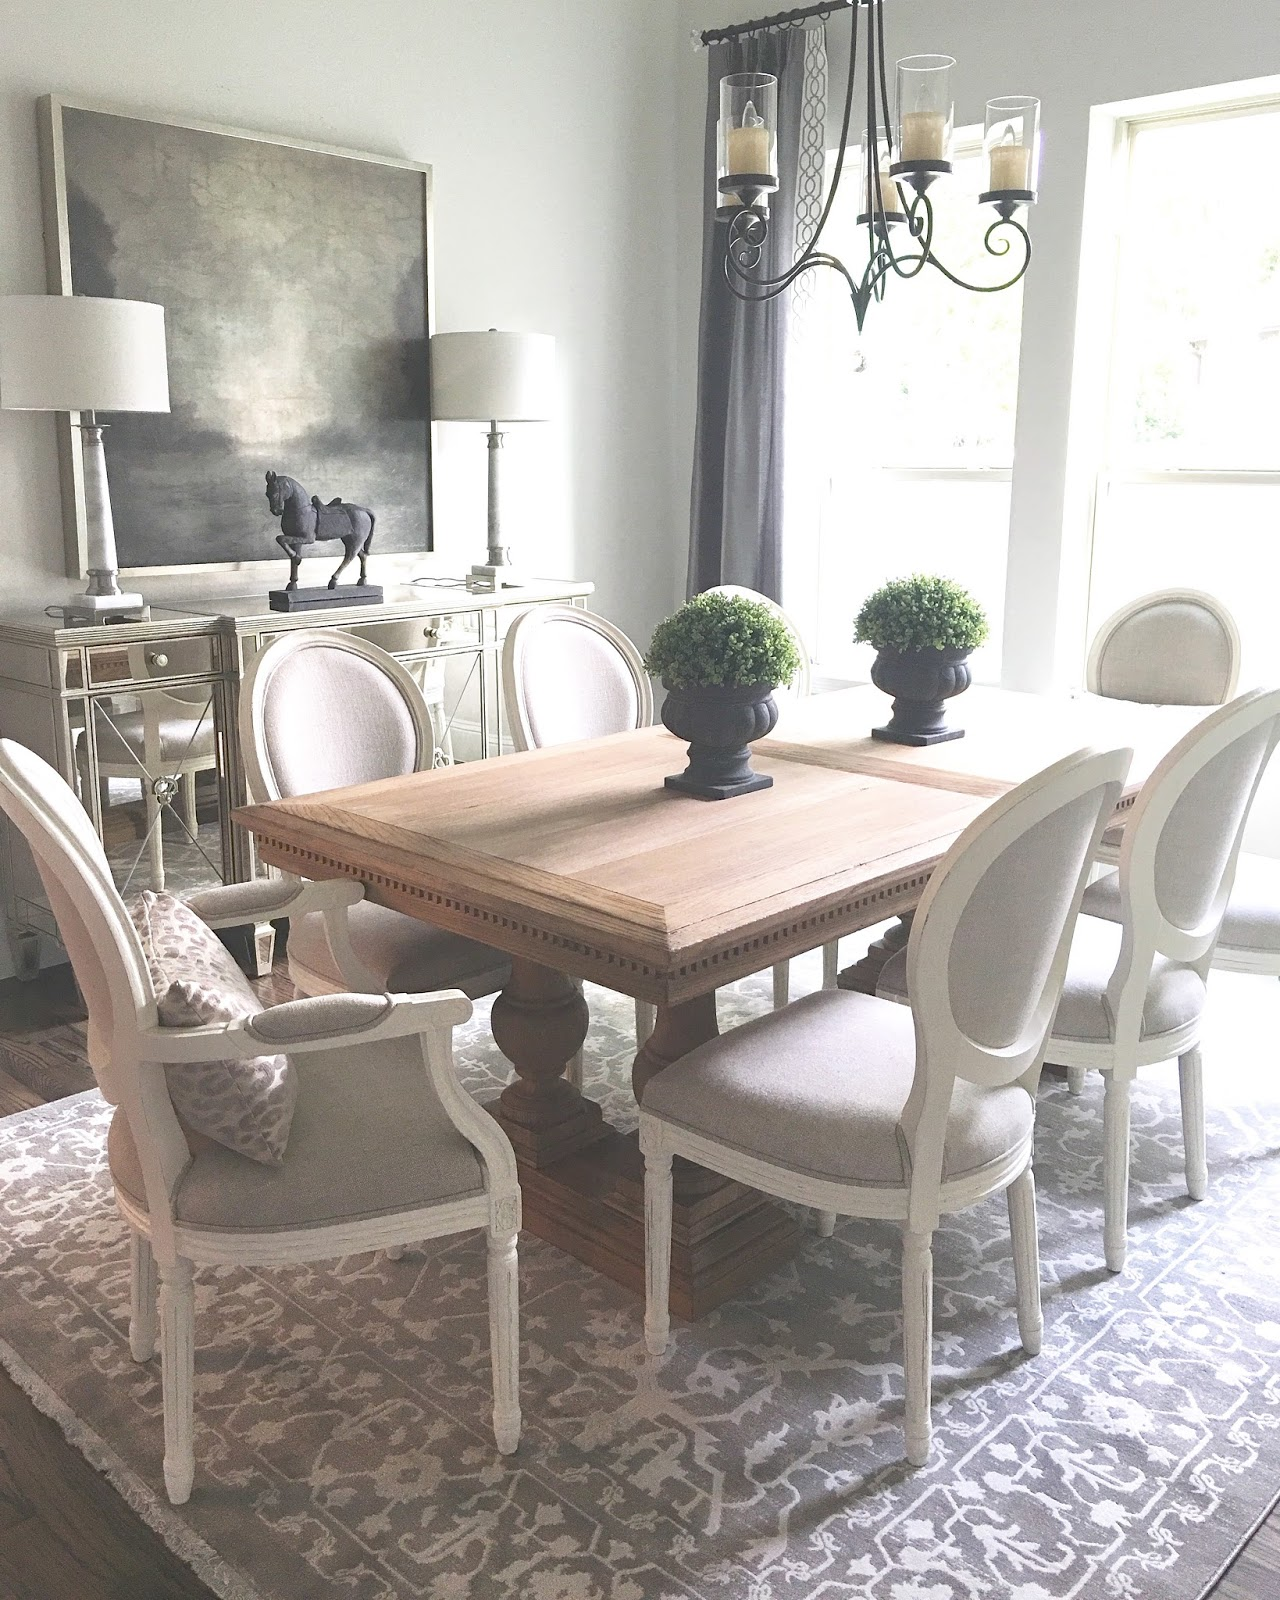 Classic Style Home: A New Rug For The Dining Room